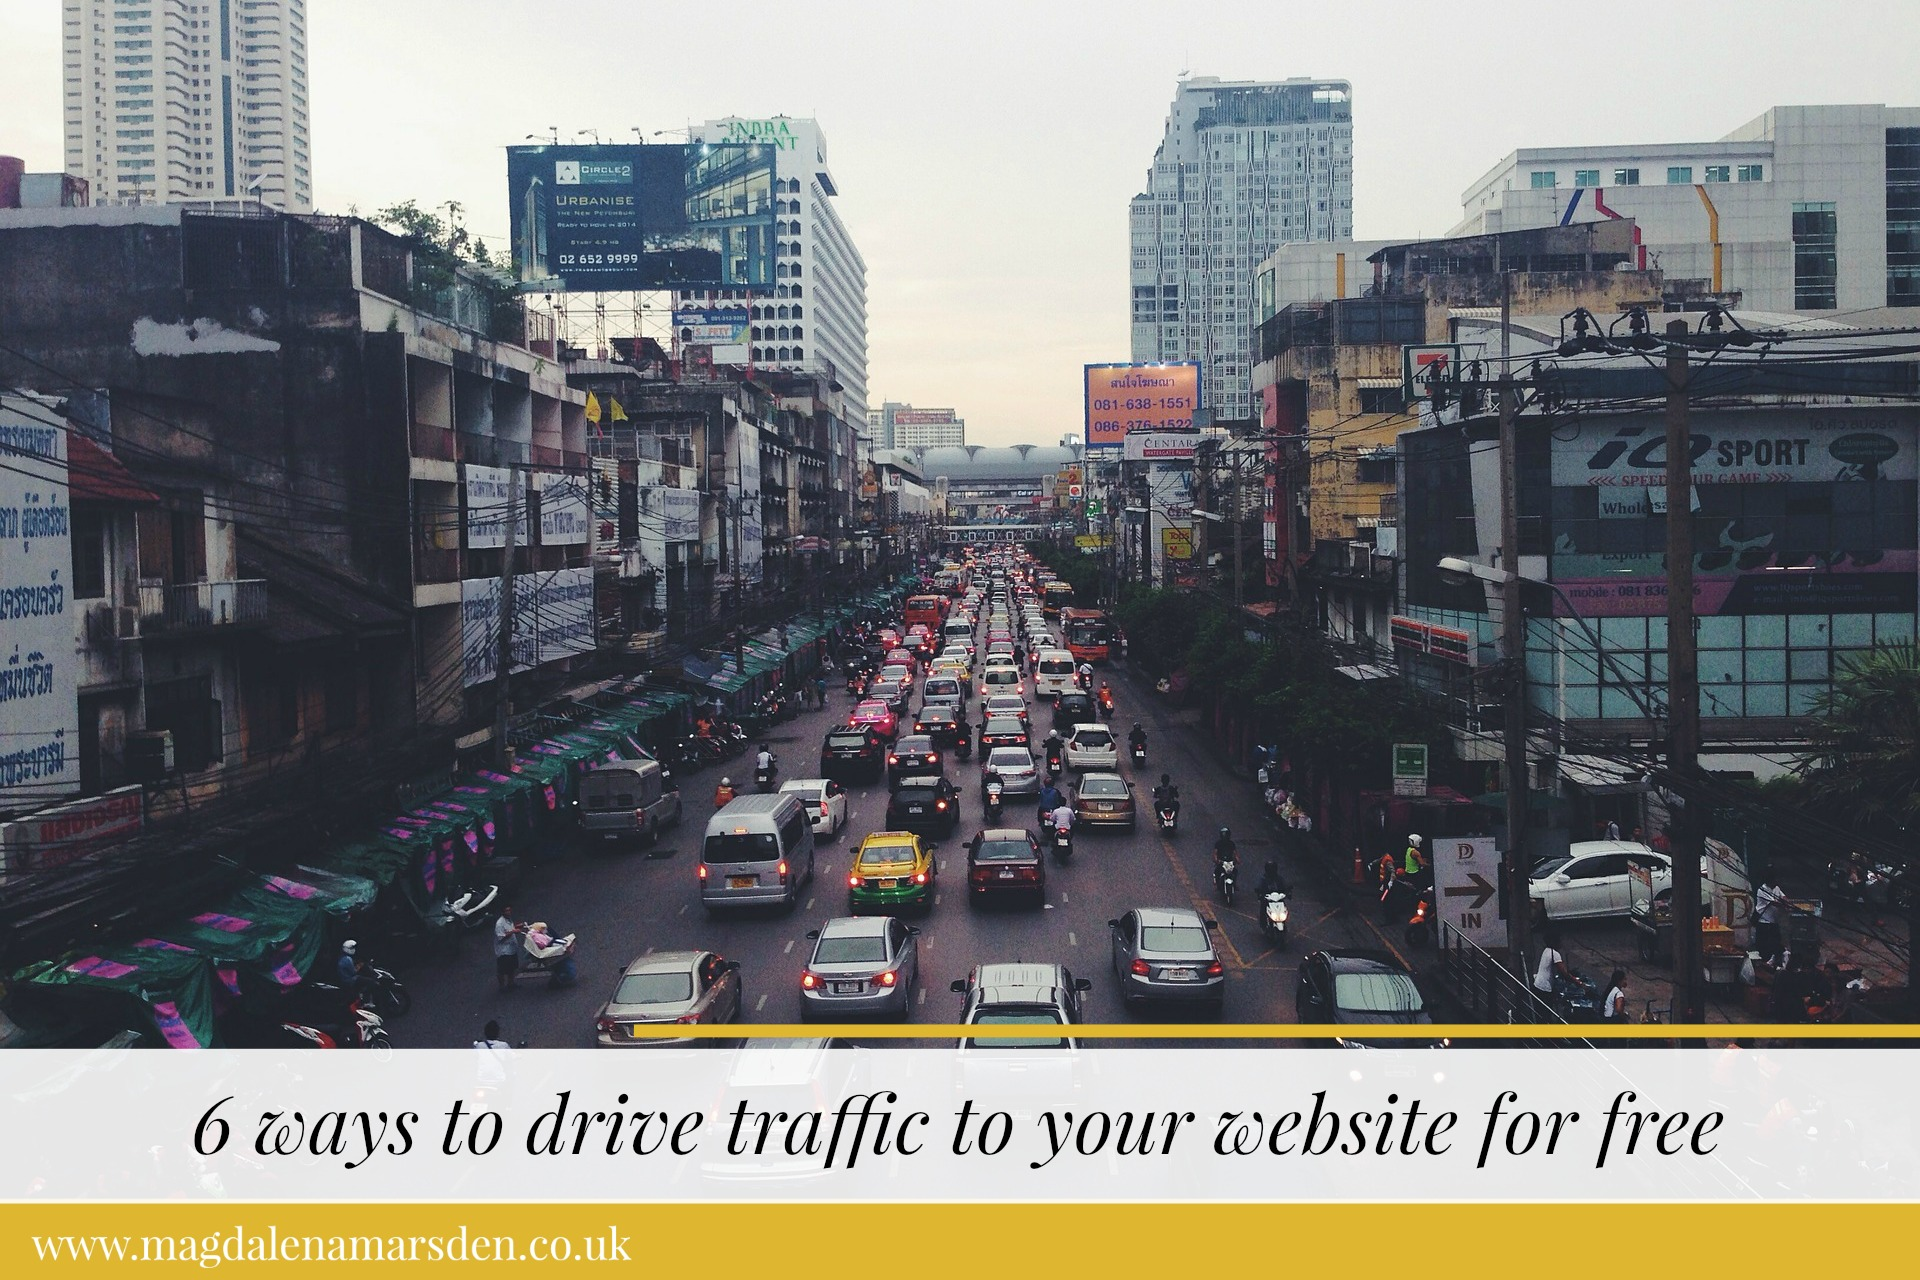 6 ways to drive traffic to your website for free